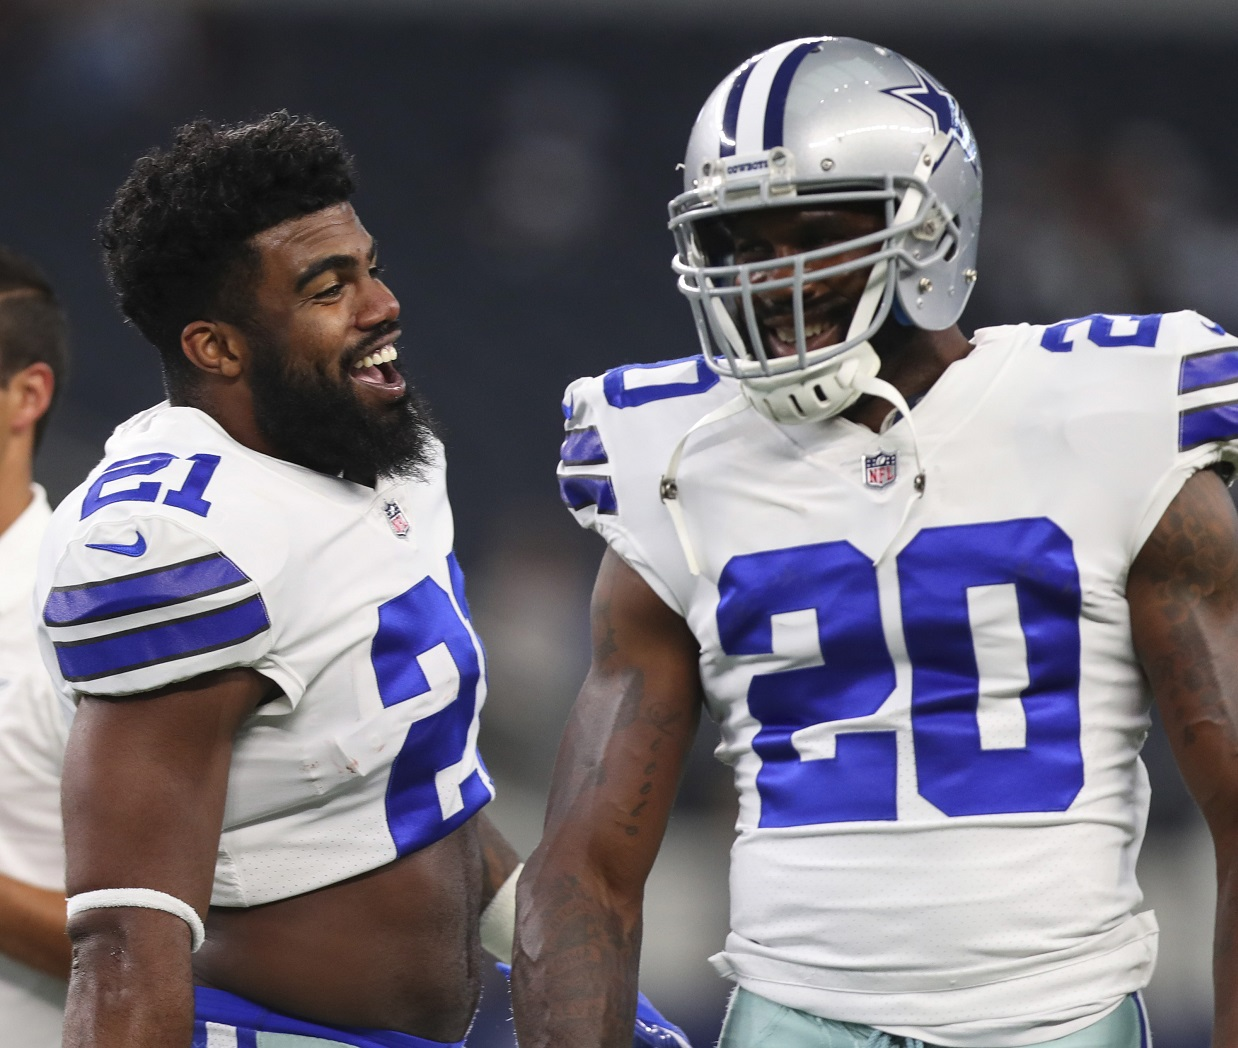 Report: Ezekiel Elliott Eligible to Play Until Petition for Rehearing is Resolved